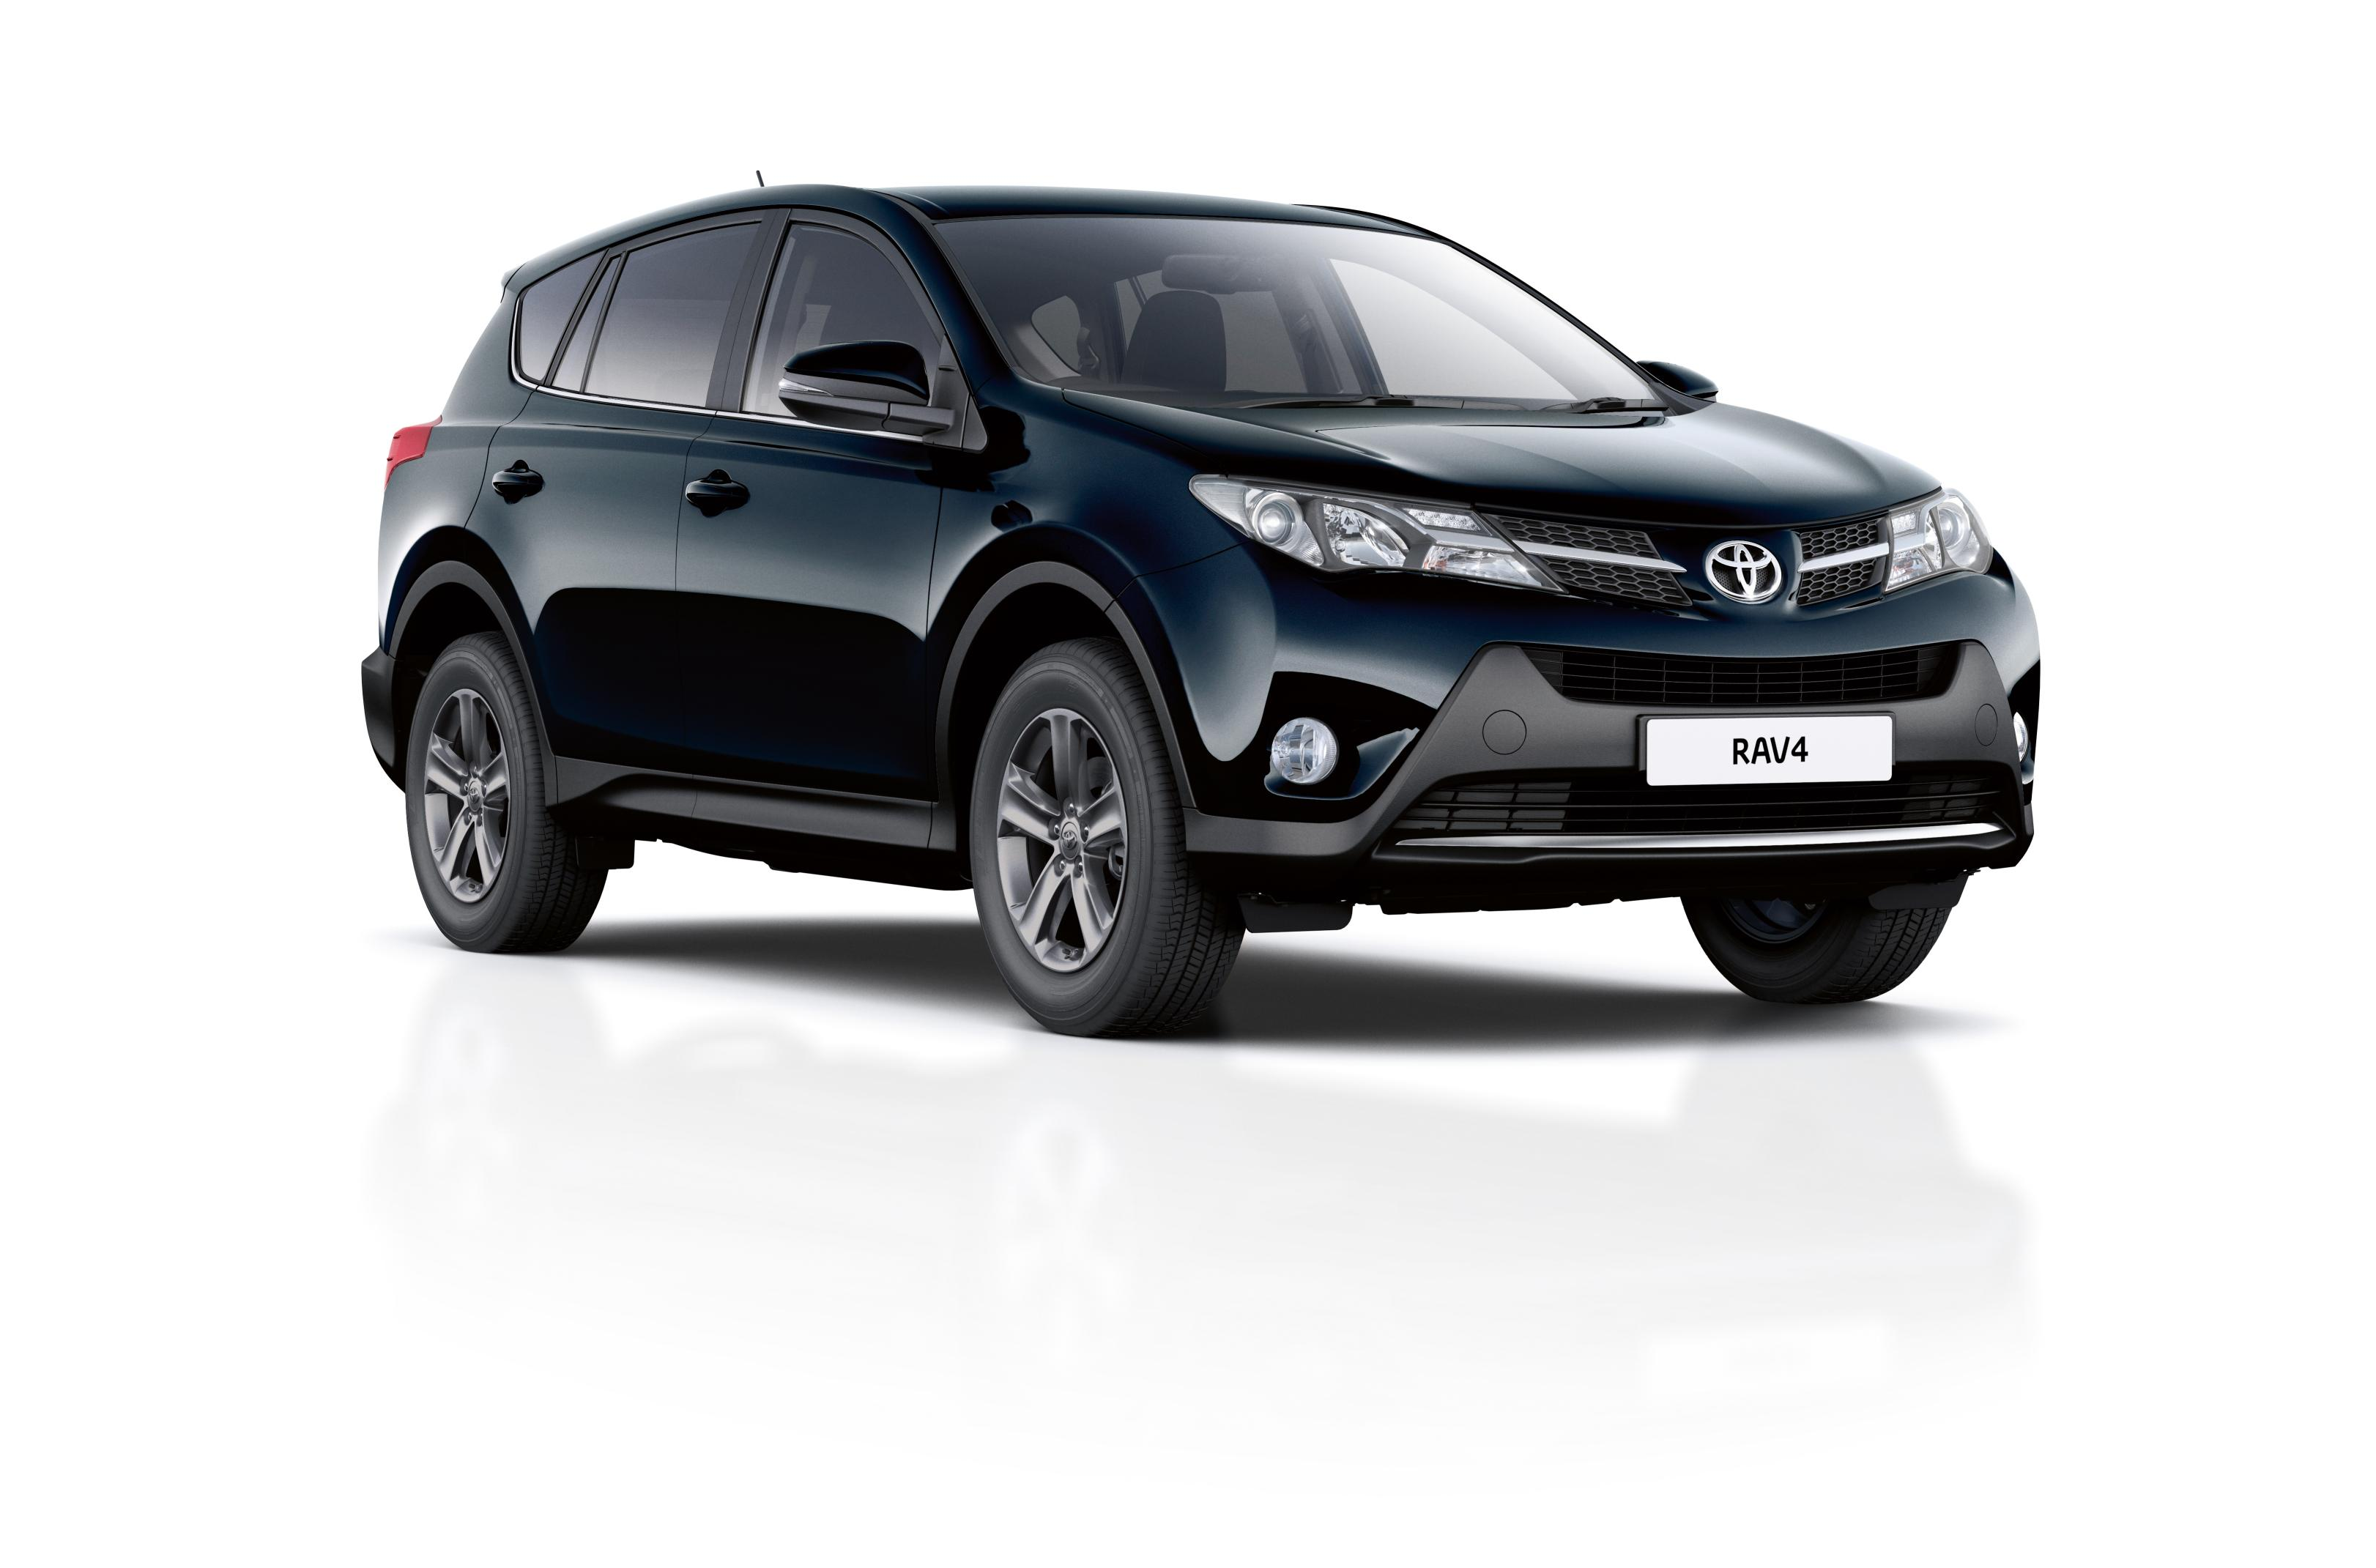 2015 toyota rav4 business edition priced at 23 995 in the united kingdom autoevolution. Black Bedroom Furniture Sets. Home Design Ideas